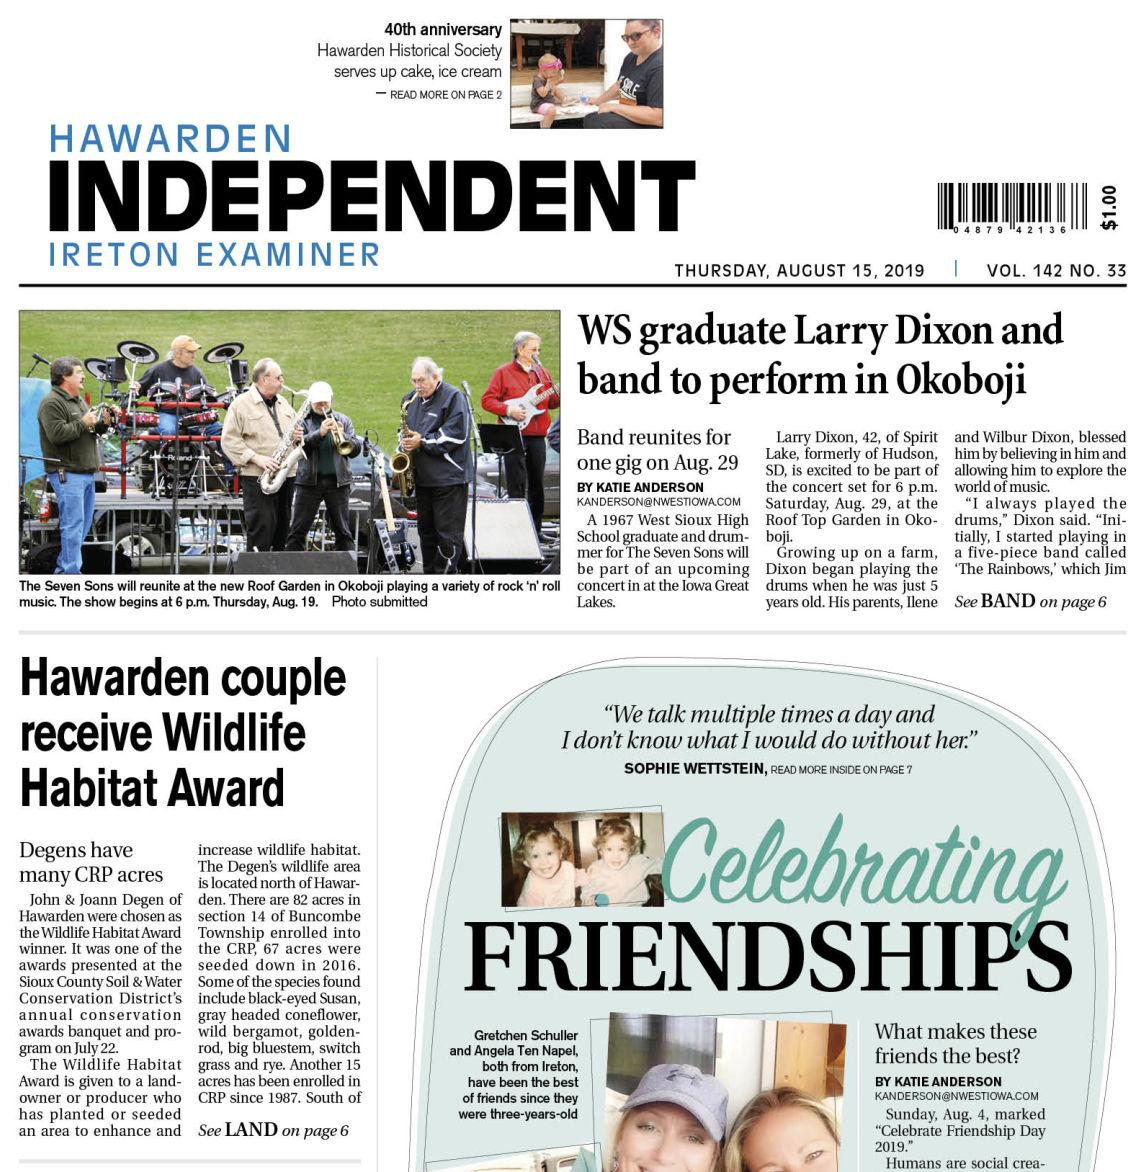 Hawarden Independent/Ireton Examiner Aug. 15, 2019